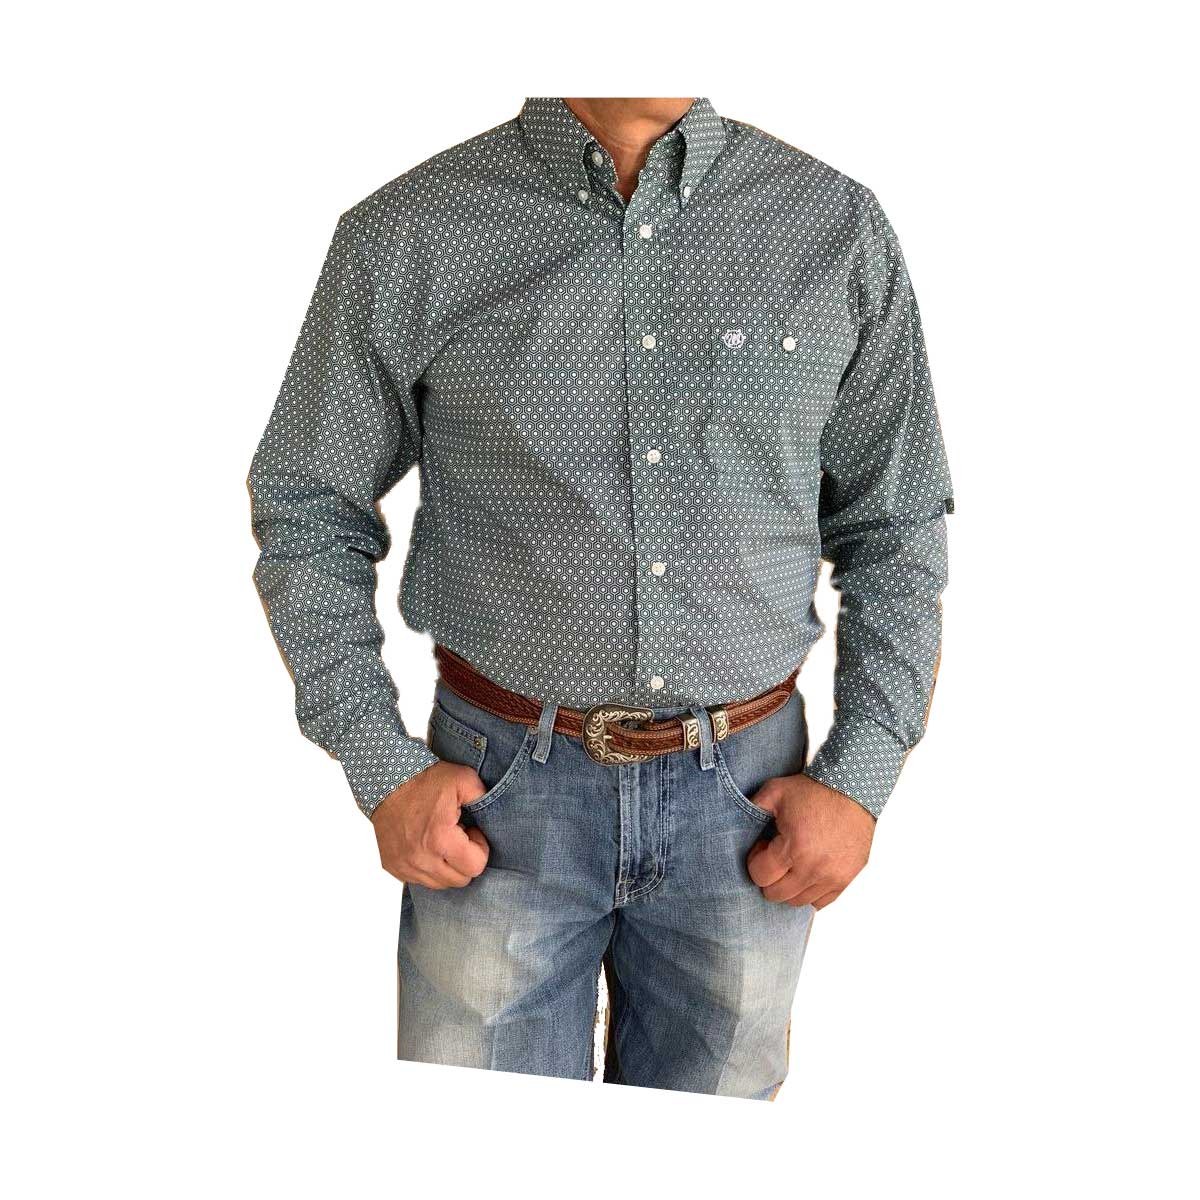 Wrangler Men's Easy Care Geometric Button Down Long Sleeve Shirt